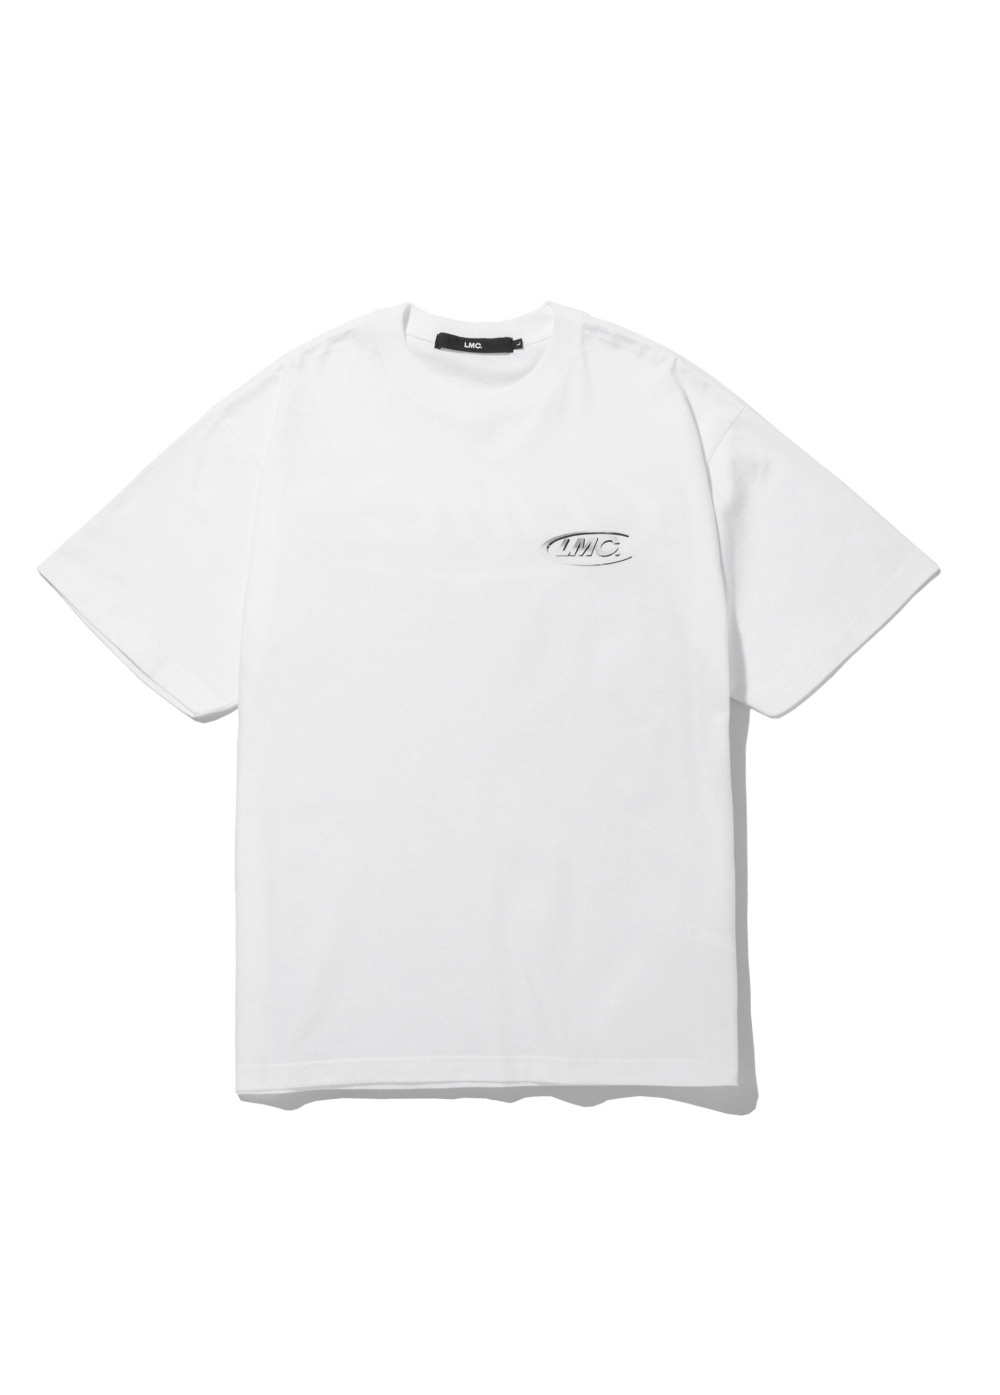 LMC 3D CO LOGO TEE white